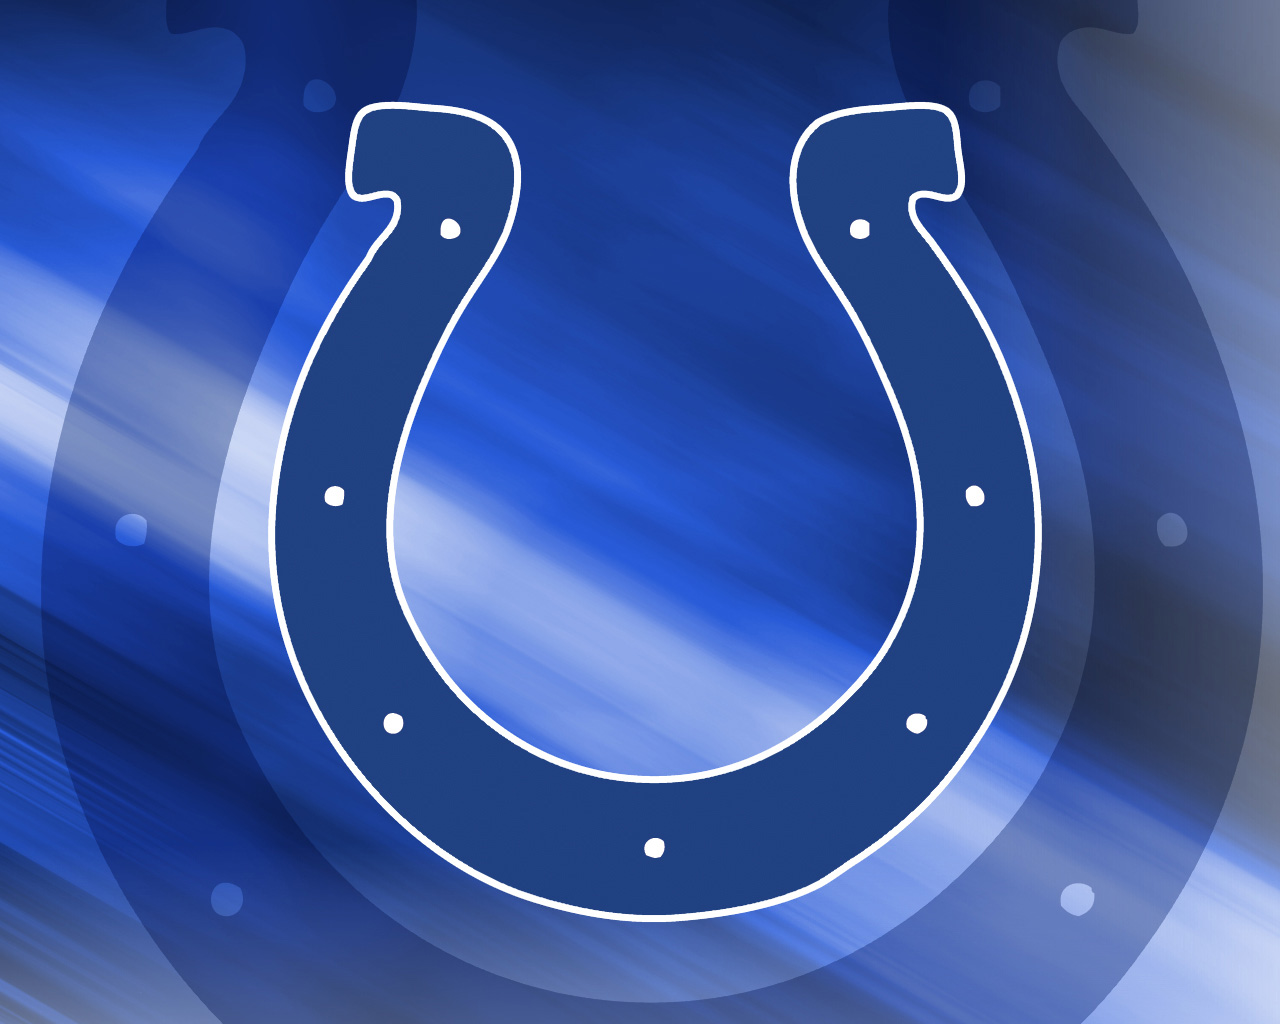 Nfl Indianapolis Colts Team Wallpaper Free HD Backgrounds